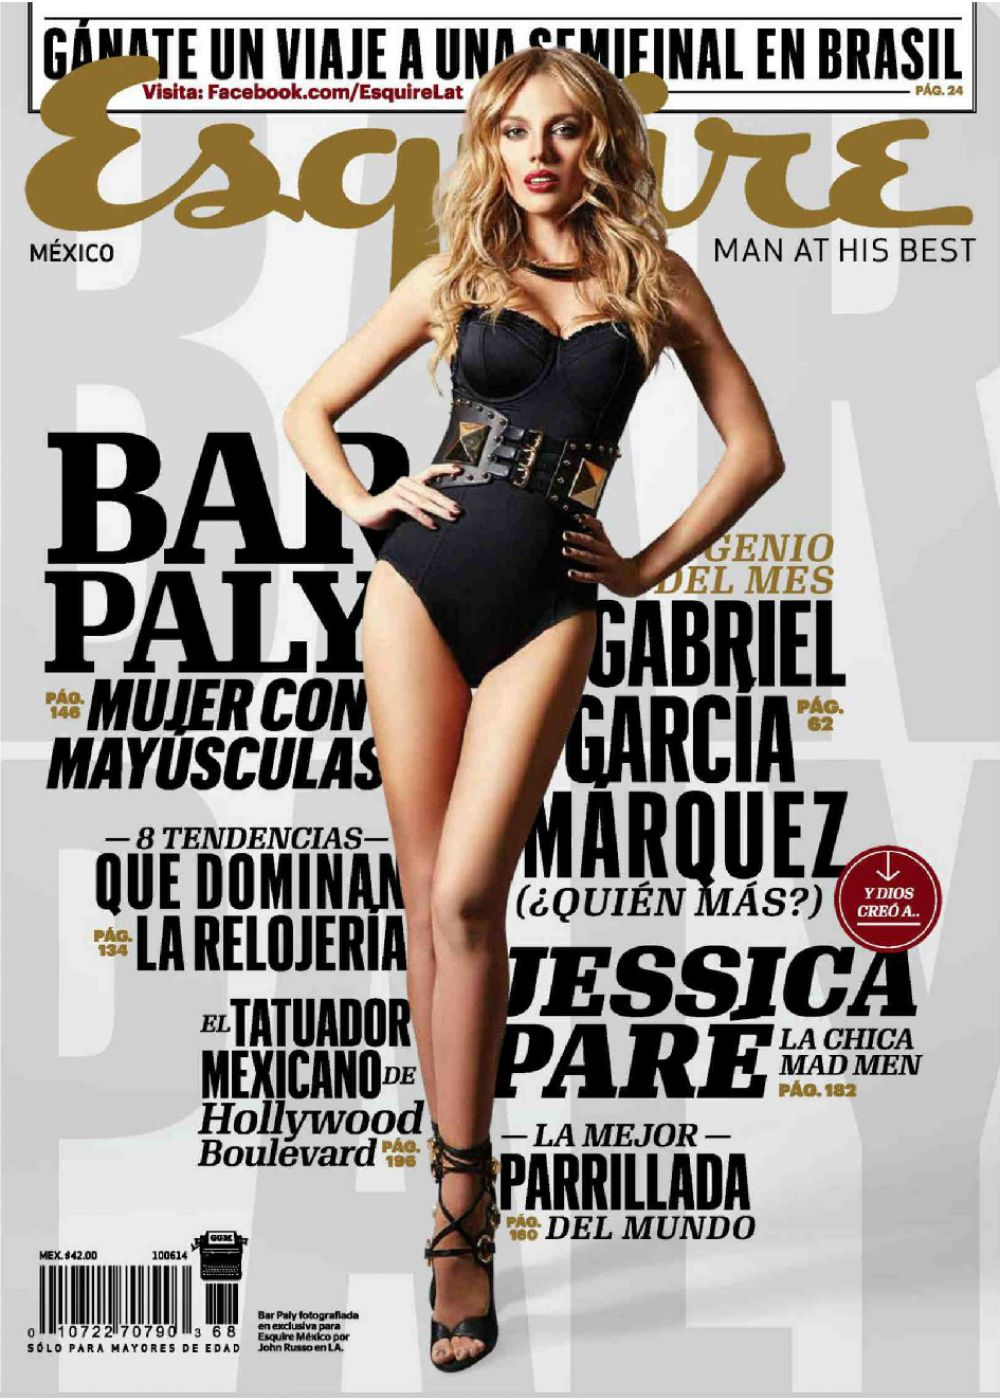 BAR PALY in Esquire Magazine, Mexico May 2014 Issue